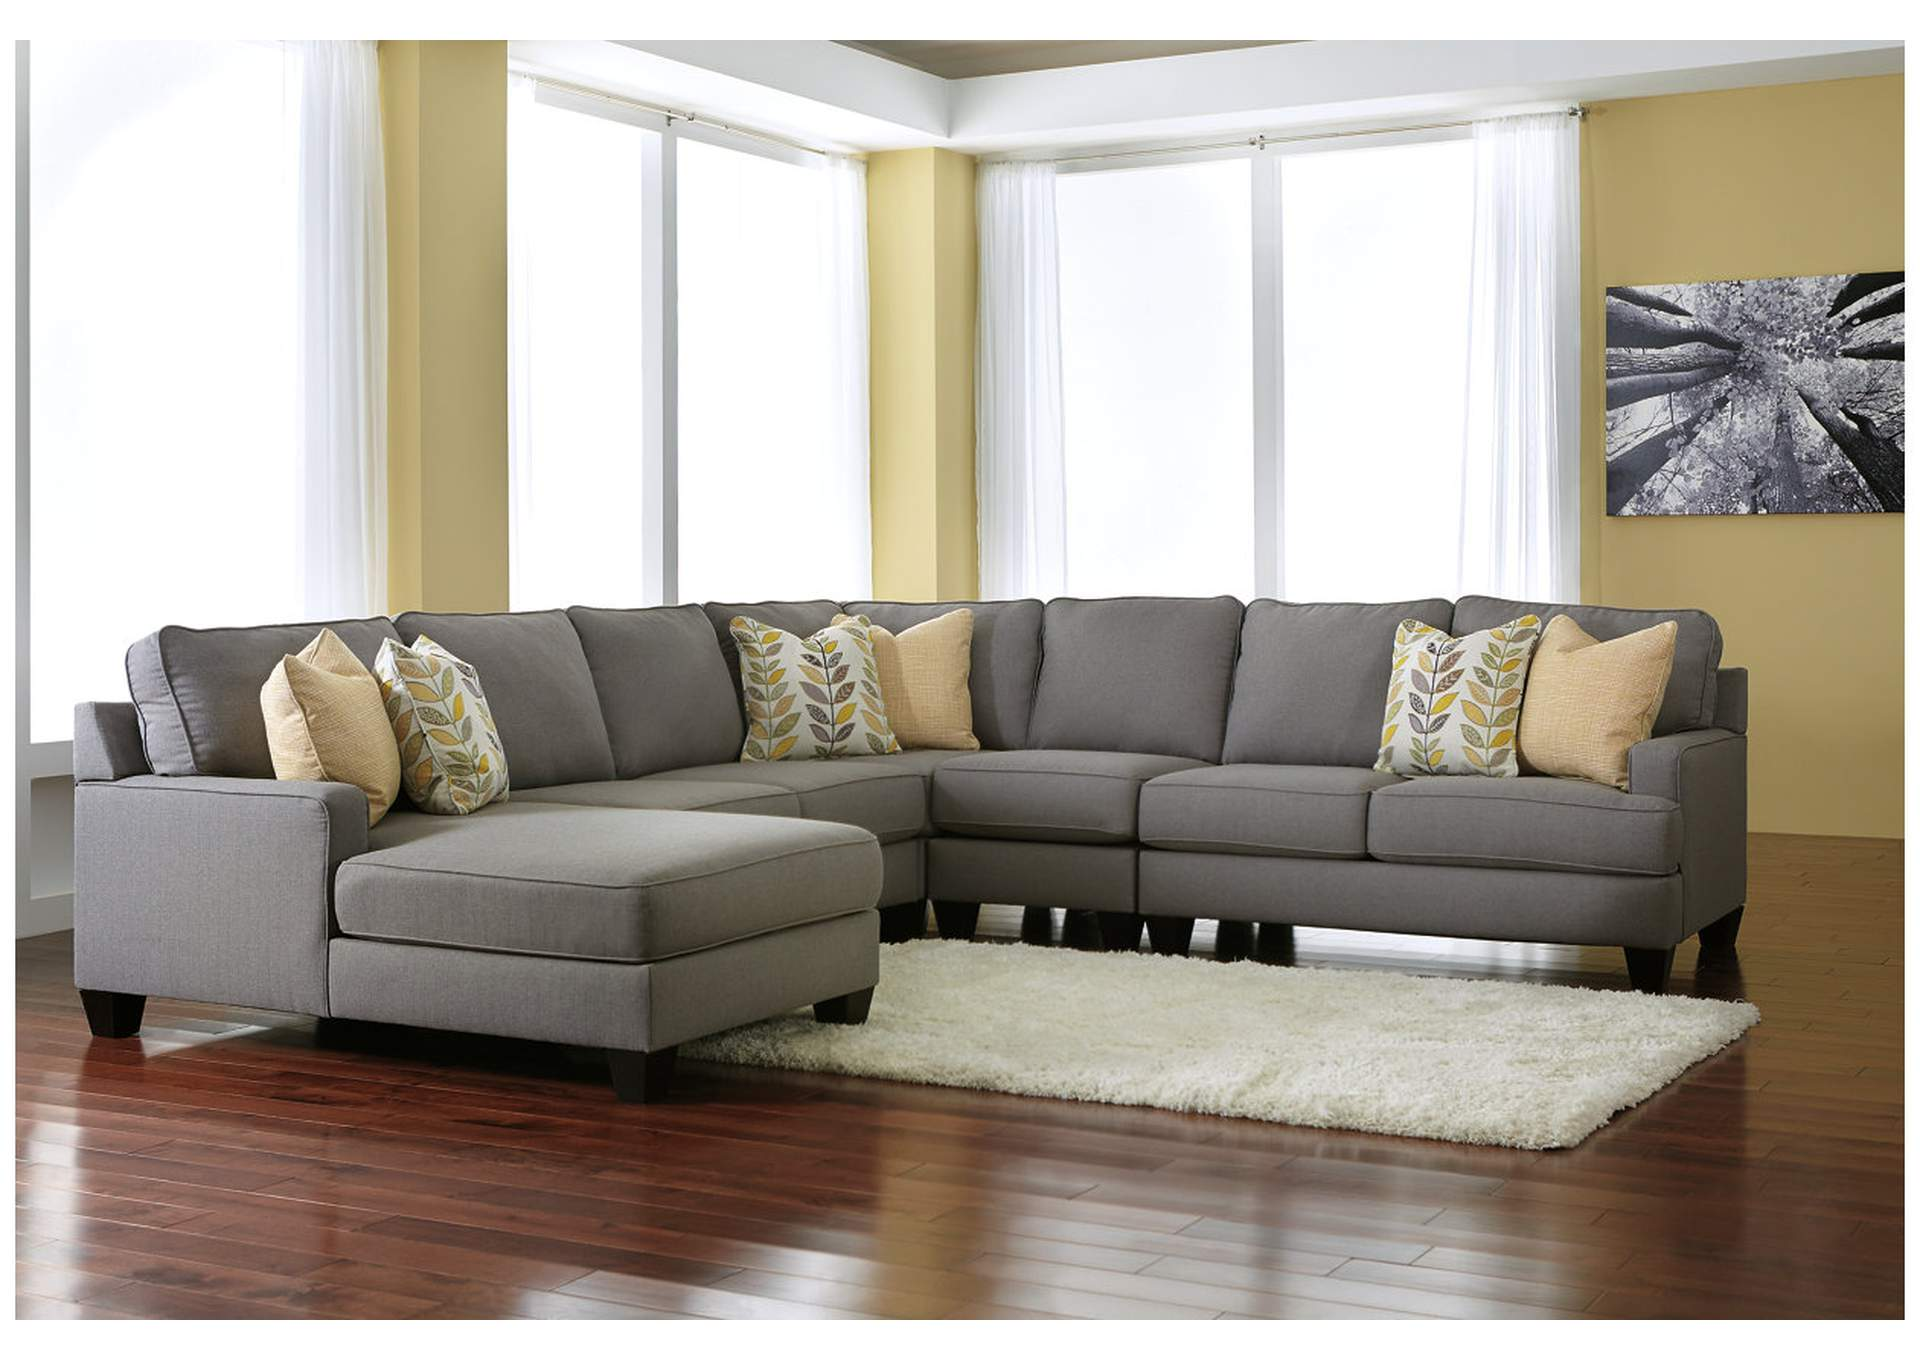 Chamberly Alloy Left Facing Chaise End Extended Sectional,Signature Design By Ashley